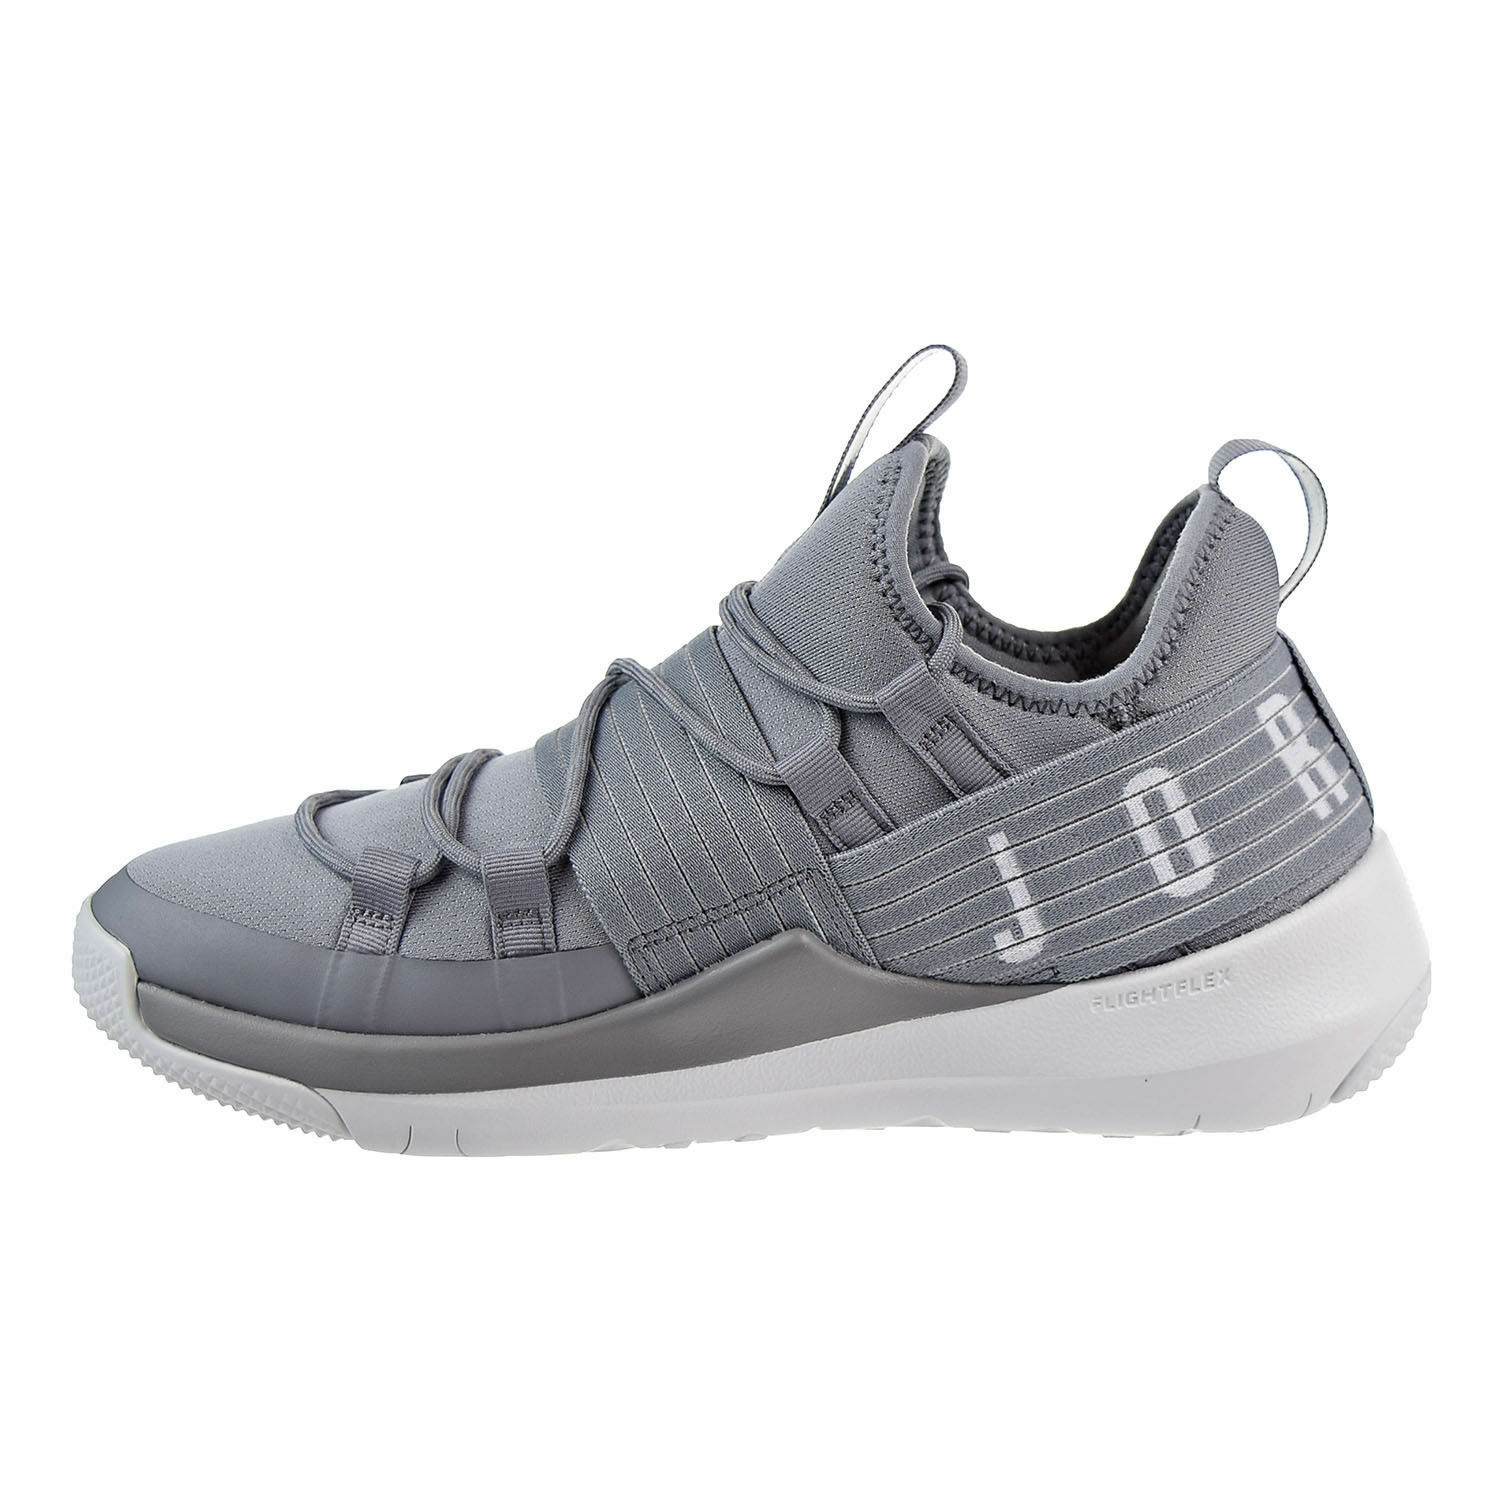 {AA1344-004} MEN'S NIKE JORDAN TRAINER PRO SHOE COOL GREY/PURE PLATINUM  NEW